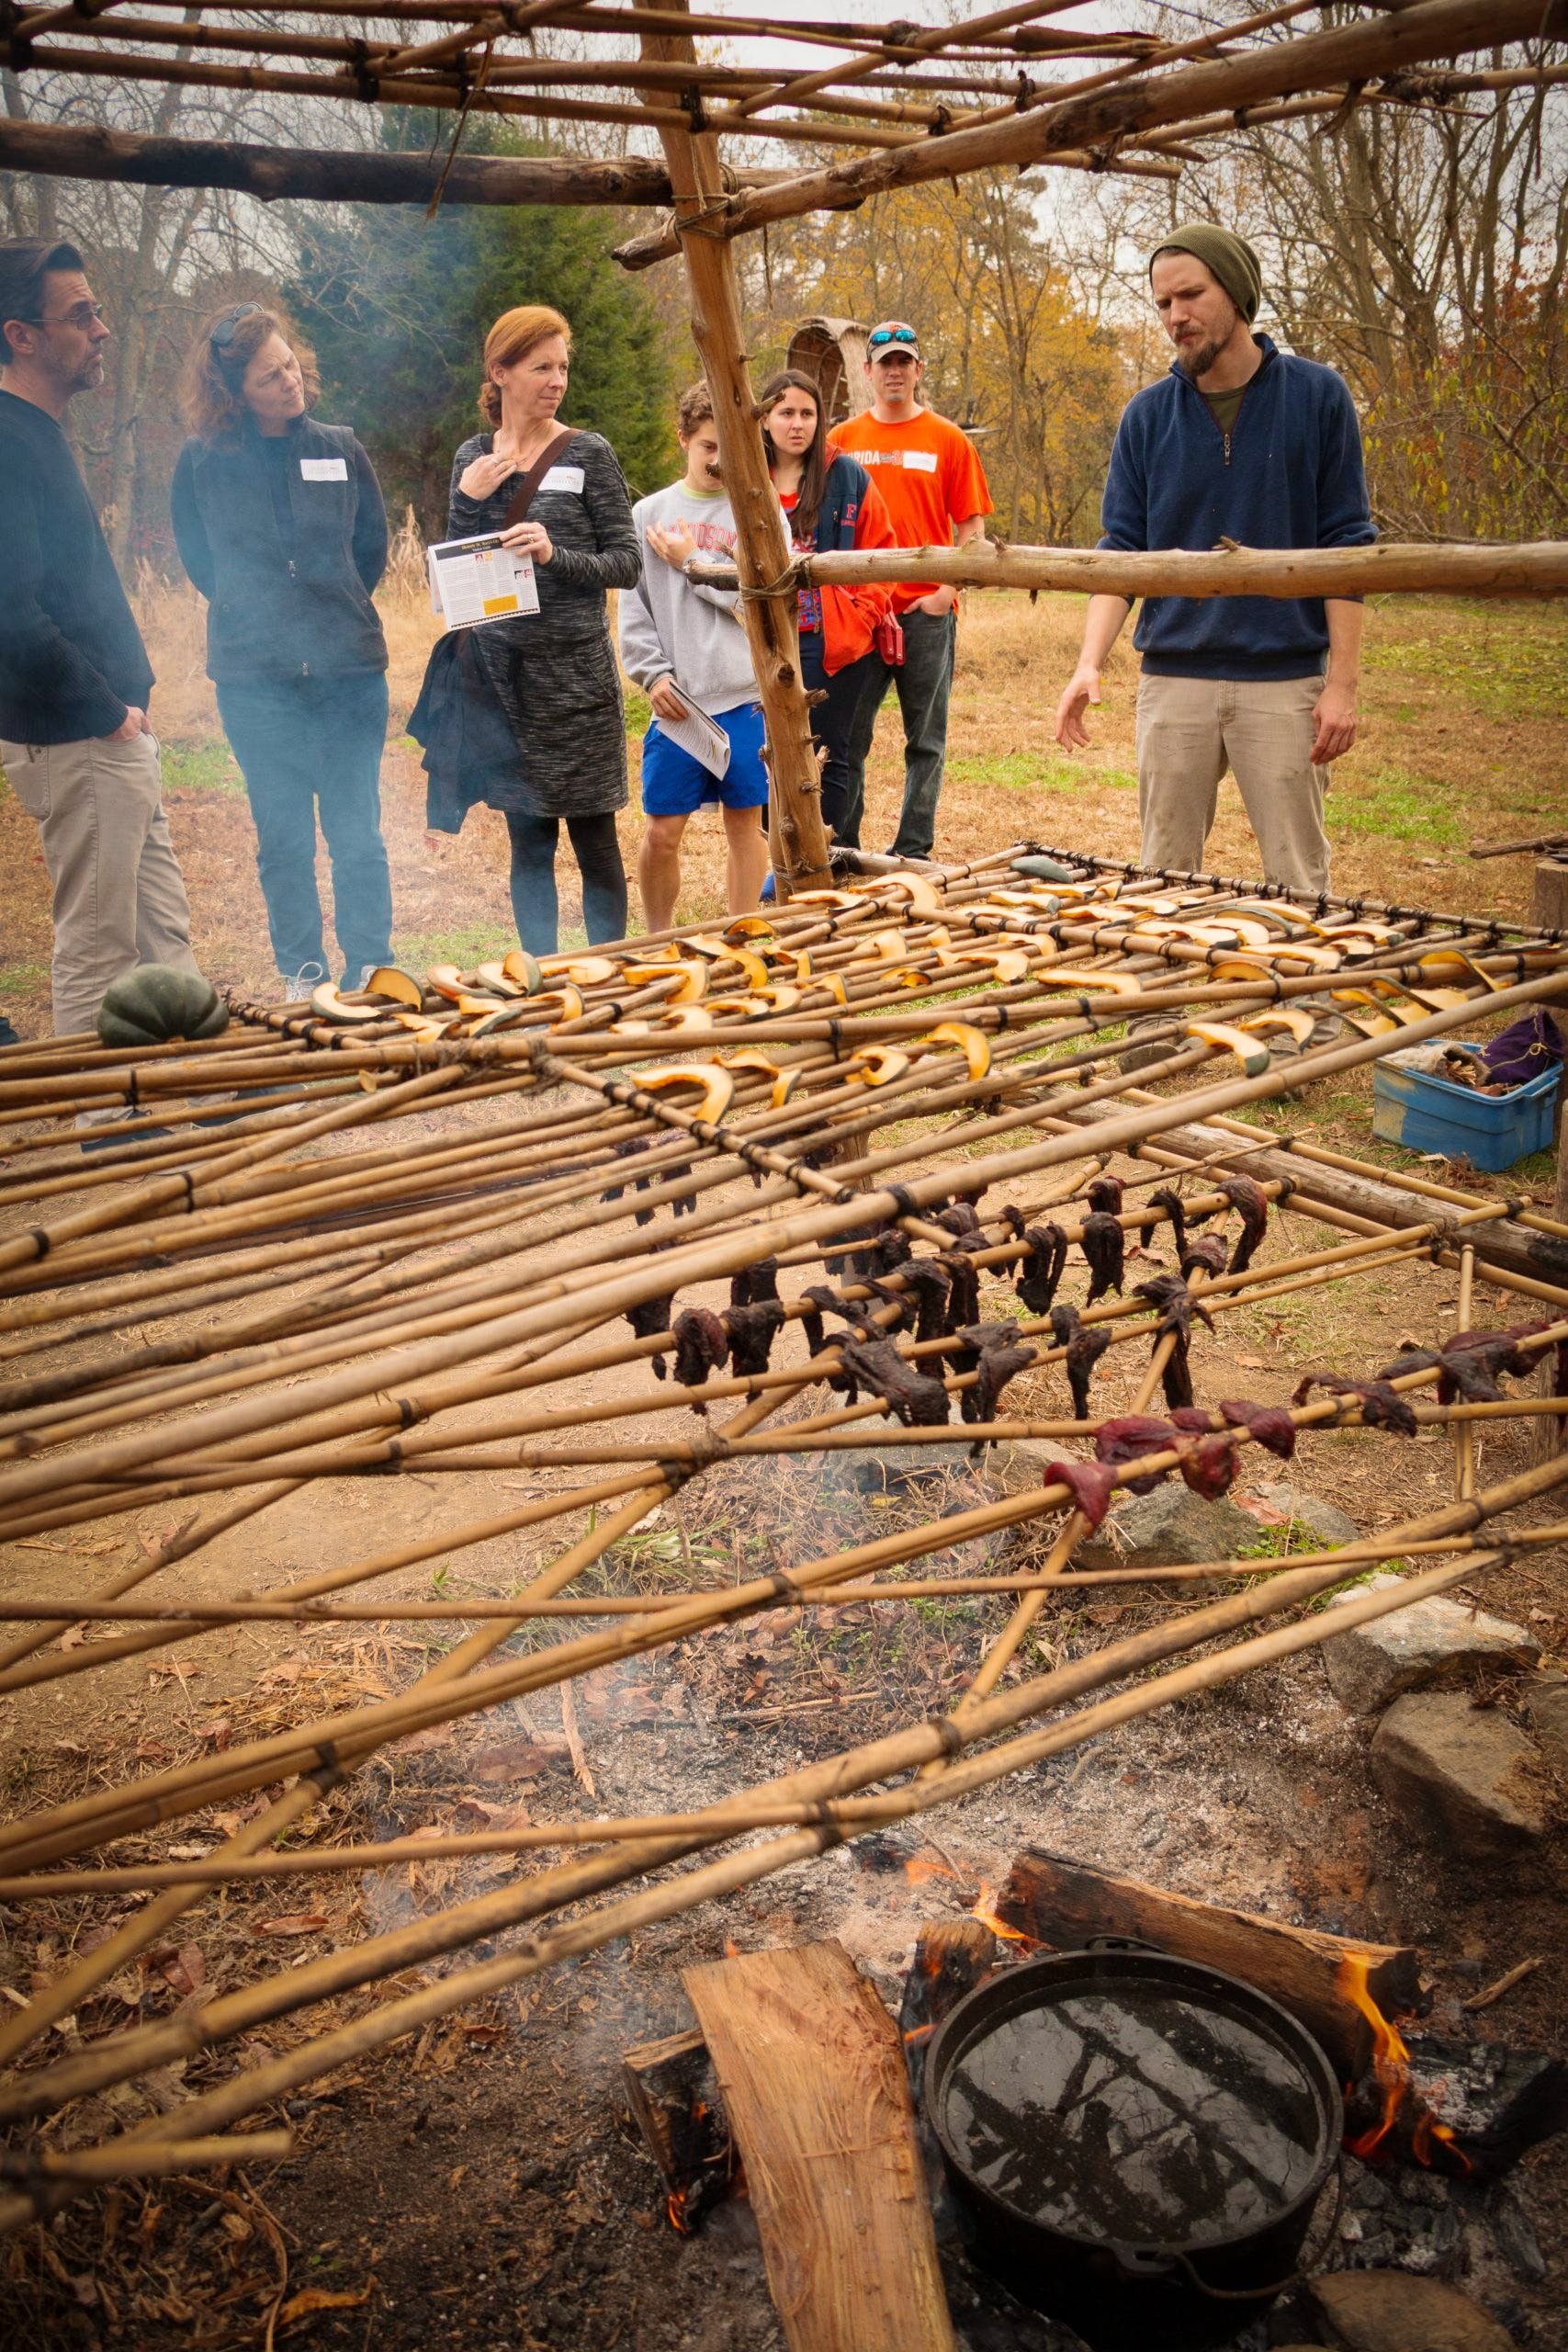 Visitors learning how the Yaocomoco people smoked and dried food